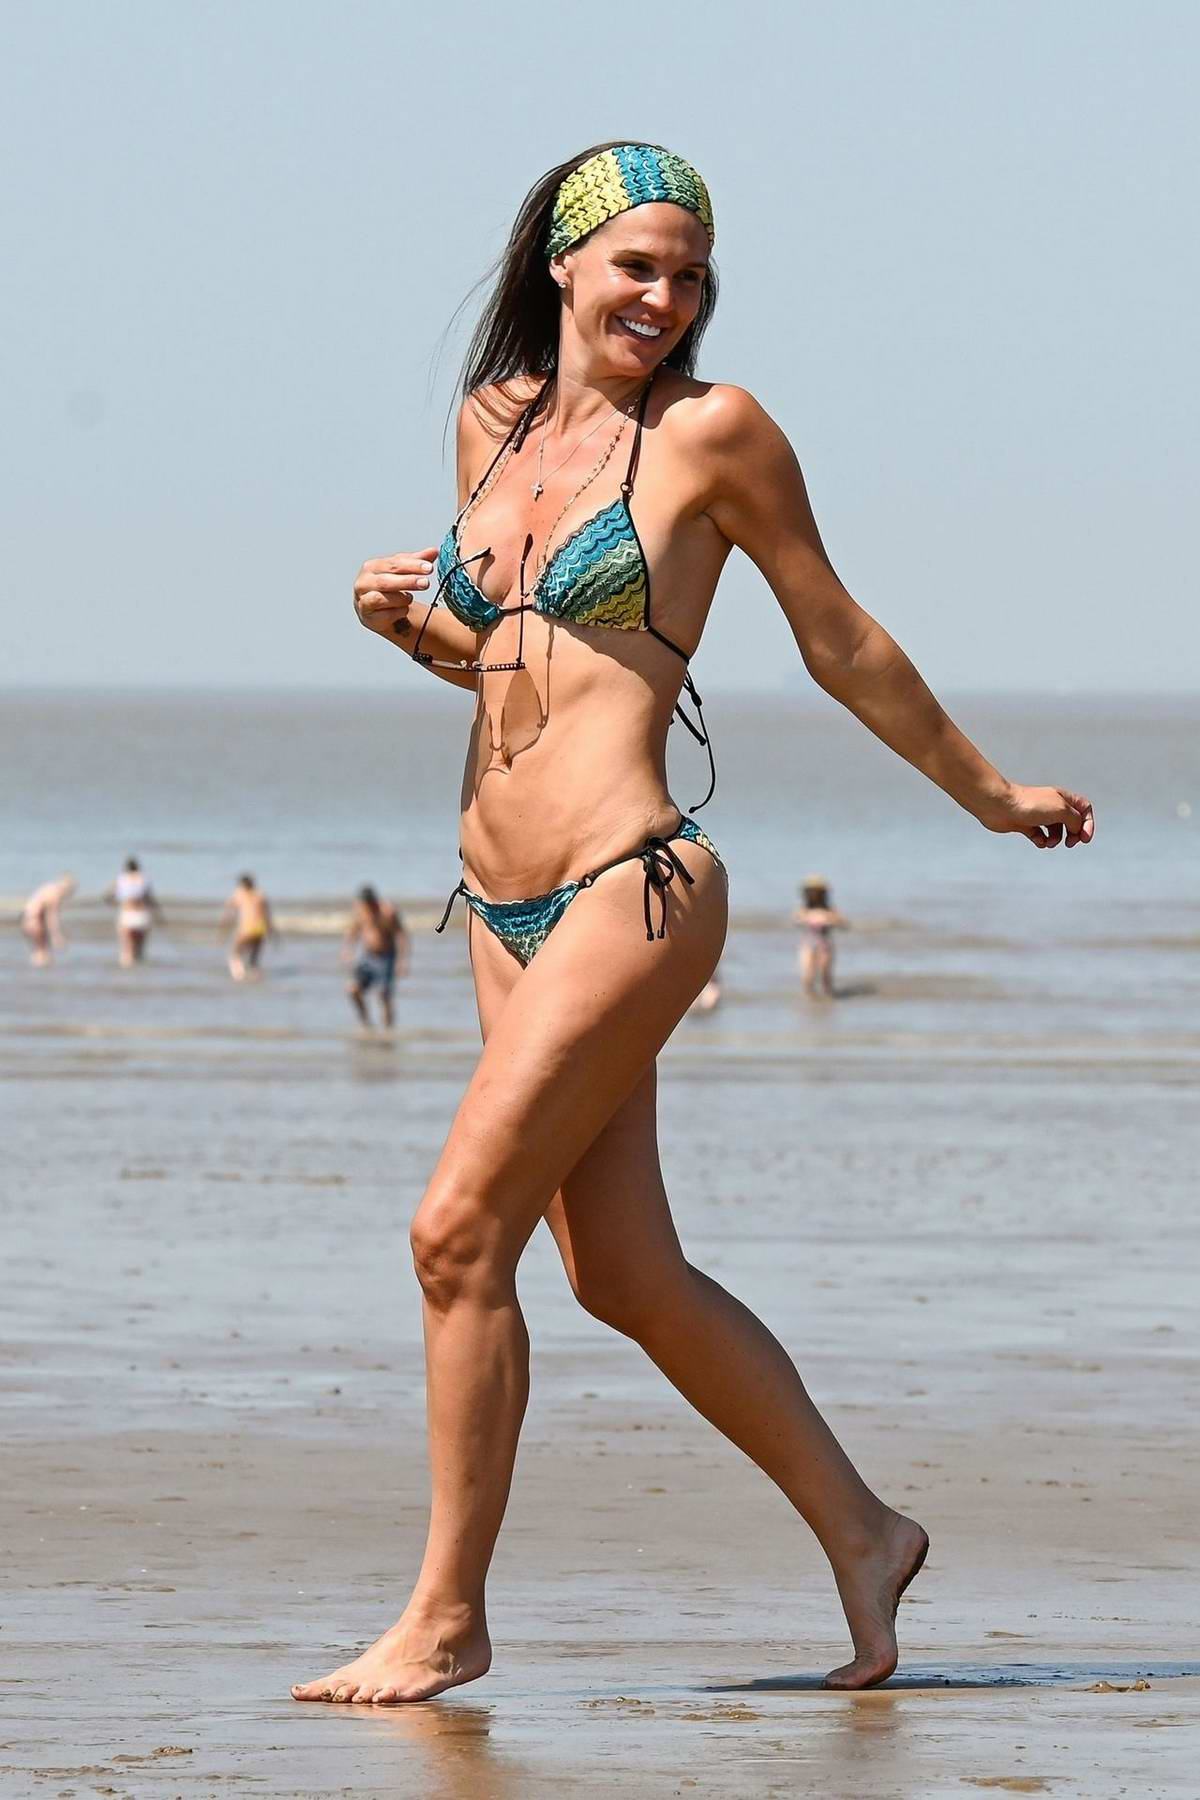 Danielle Lloyd shows off her bikini body on the hottest day of the year at Weston-super-Mare beach, UK